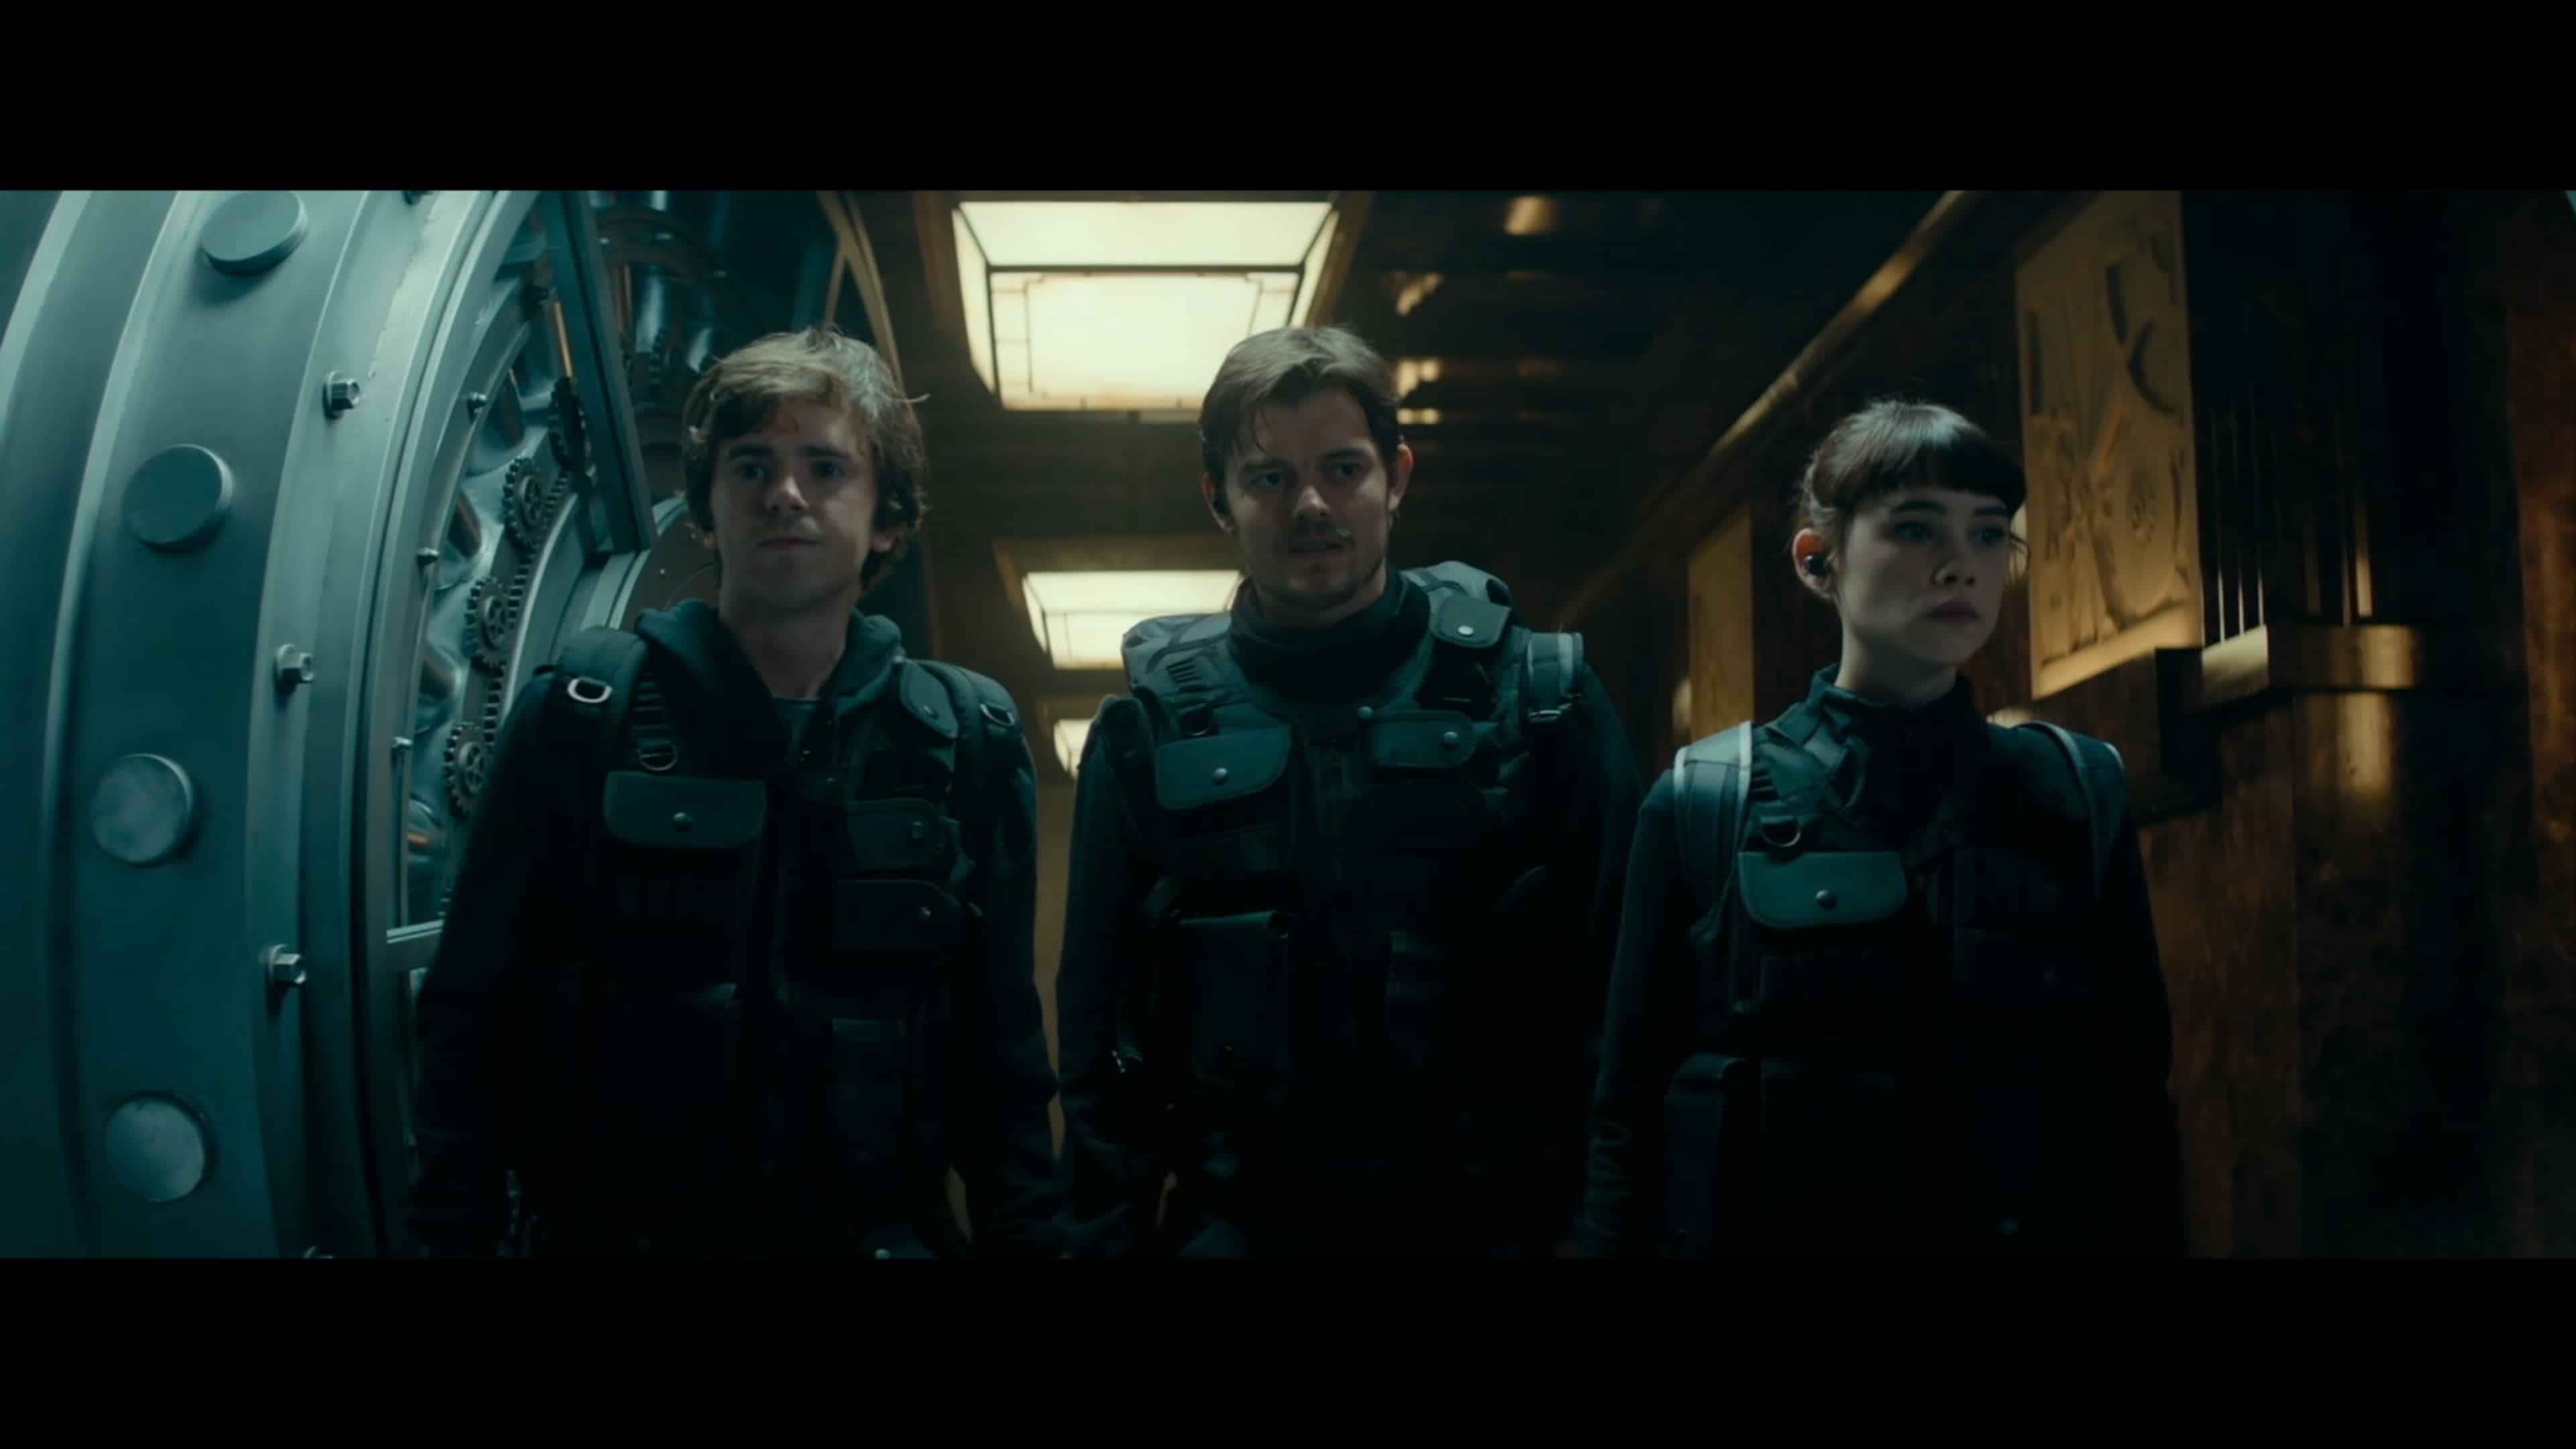 Thomas (Freddie Highmore), James (Sam Riley) and Lorraine (Astrid Berges-Frisbey) making their way to the vault